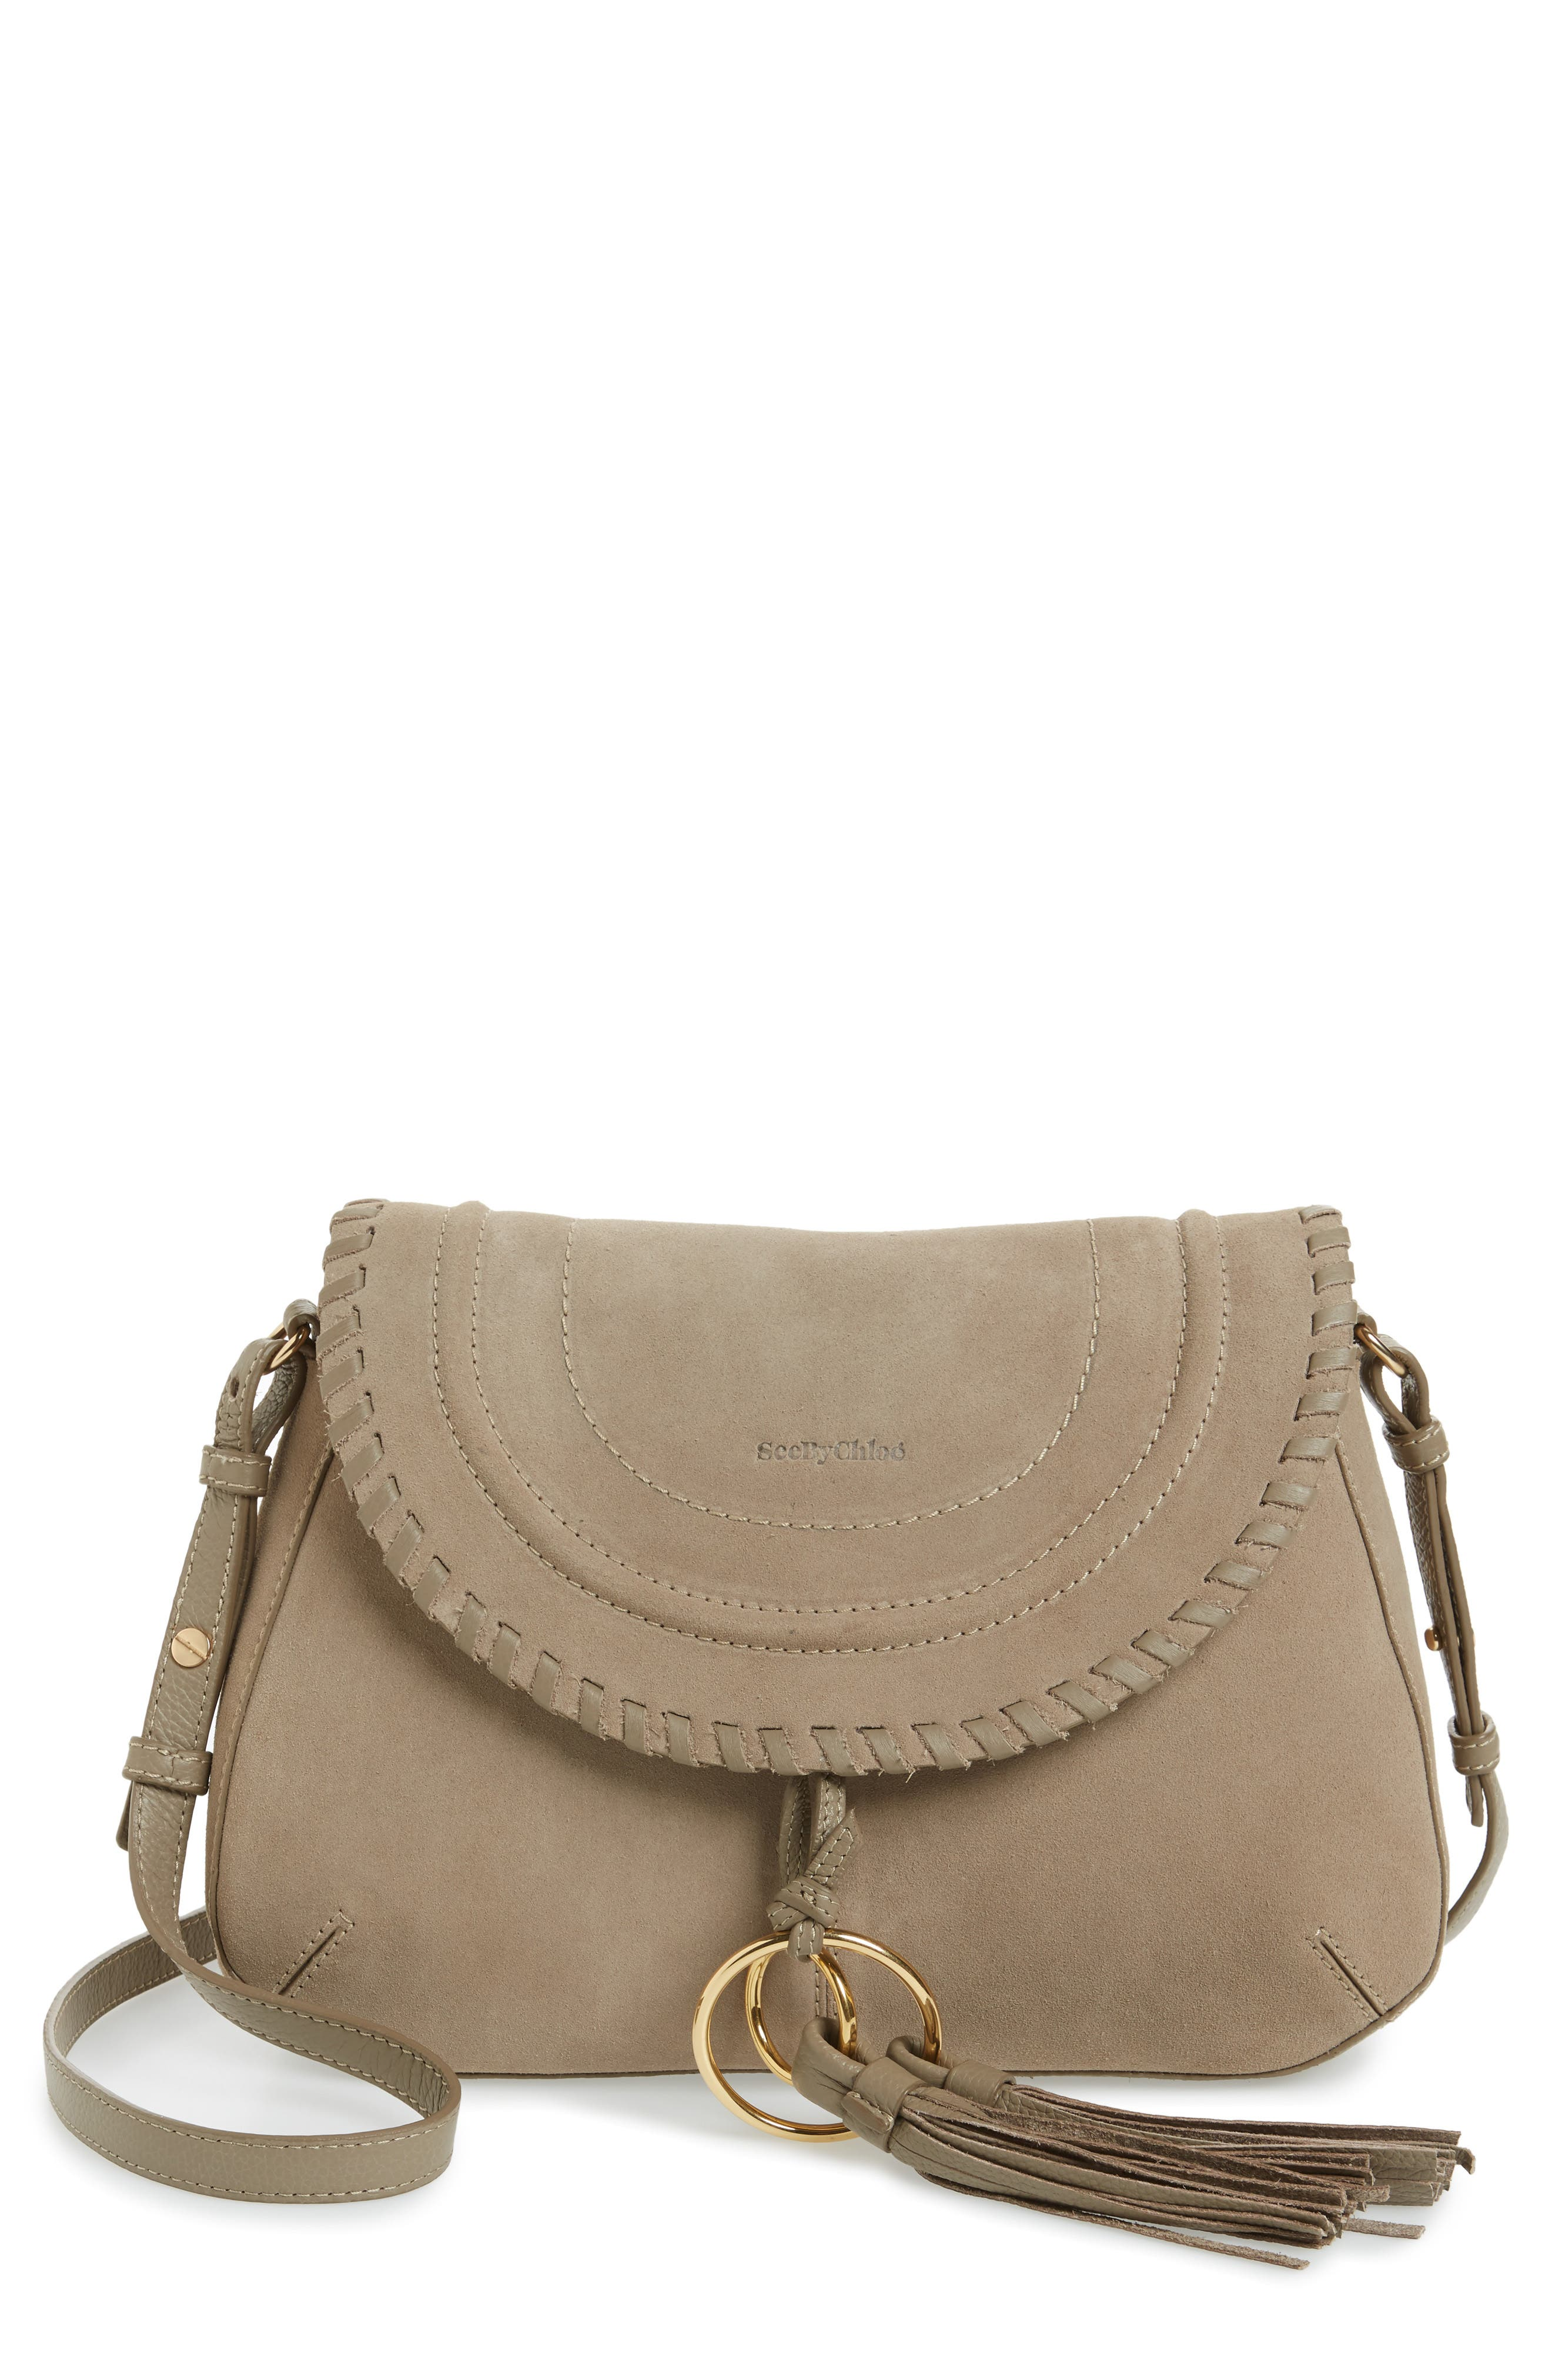 See by Chloé Polly Crossbody Bag